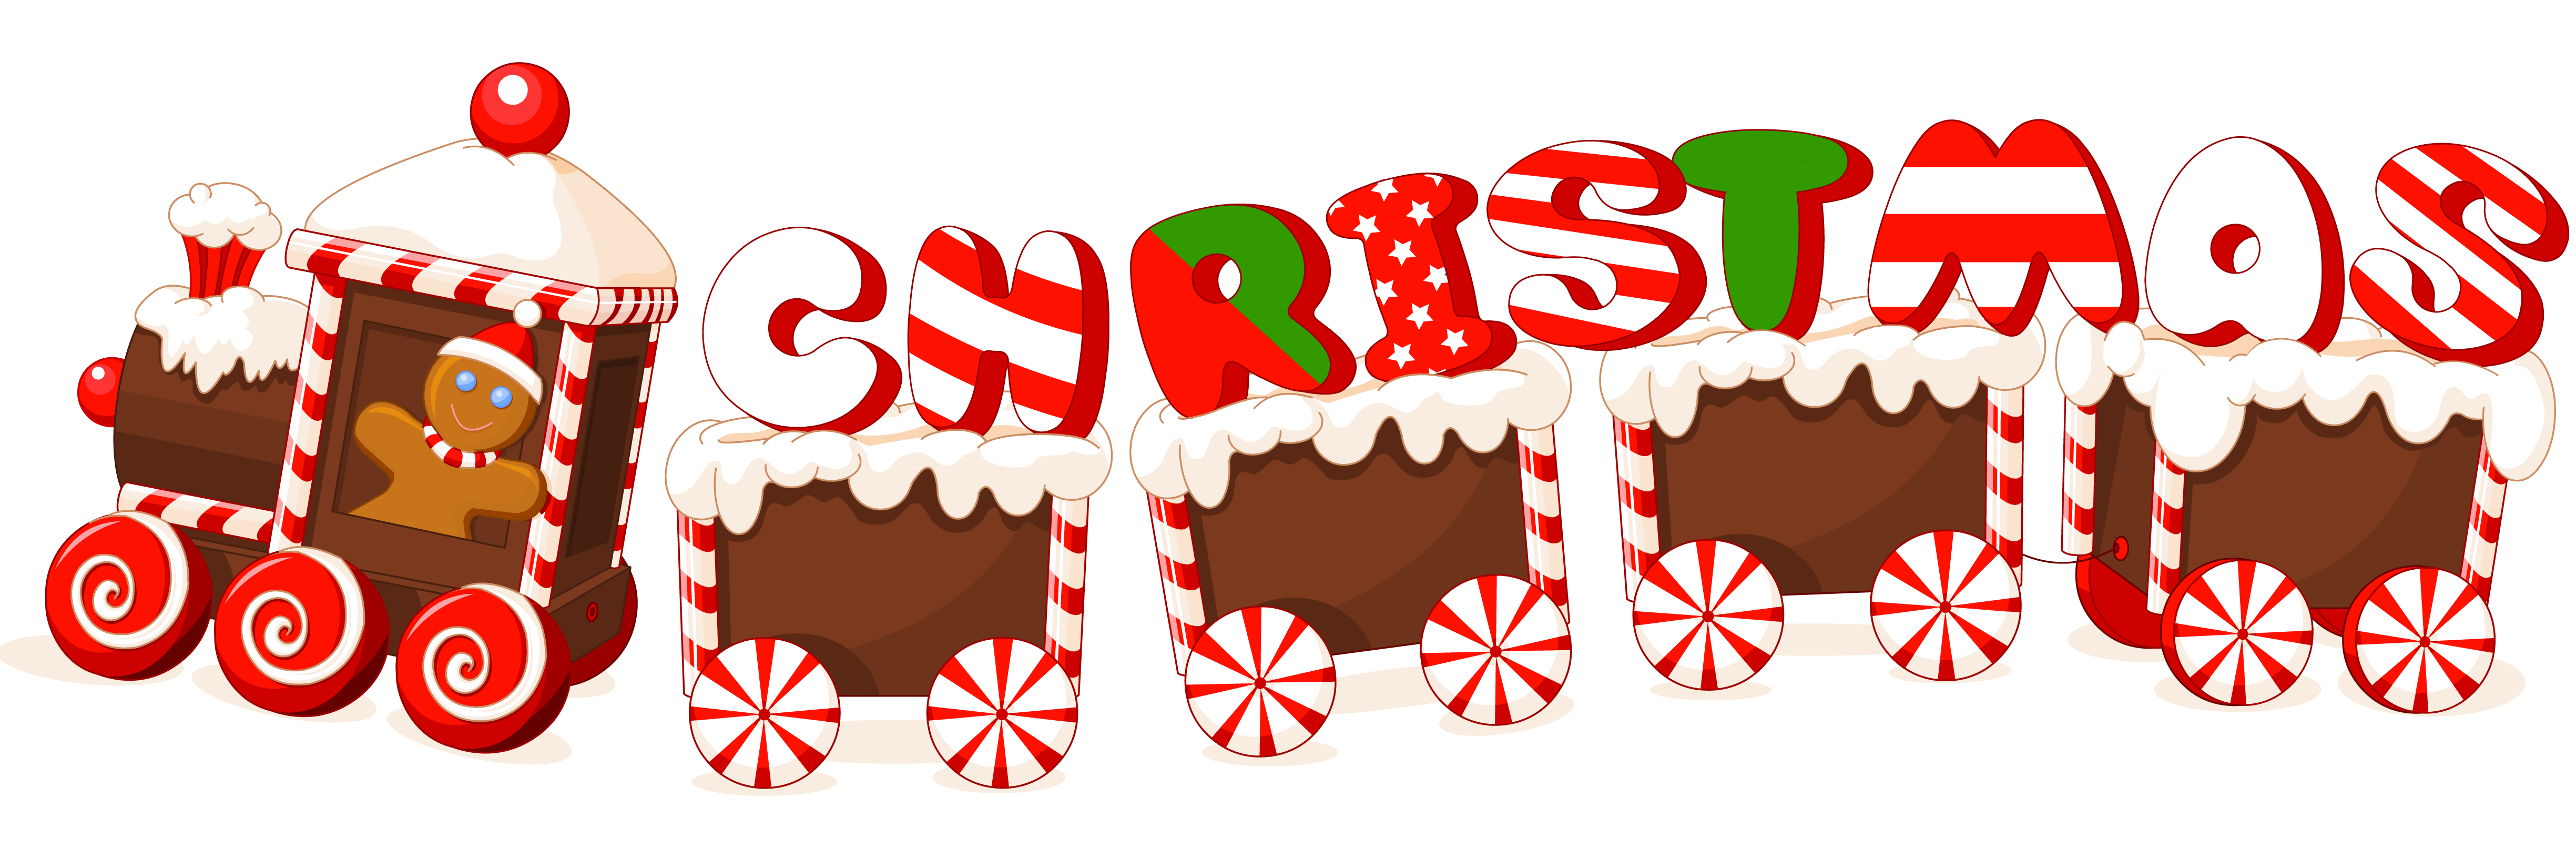 Clipart train sign. Merry christmas transparent png